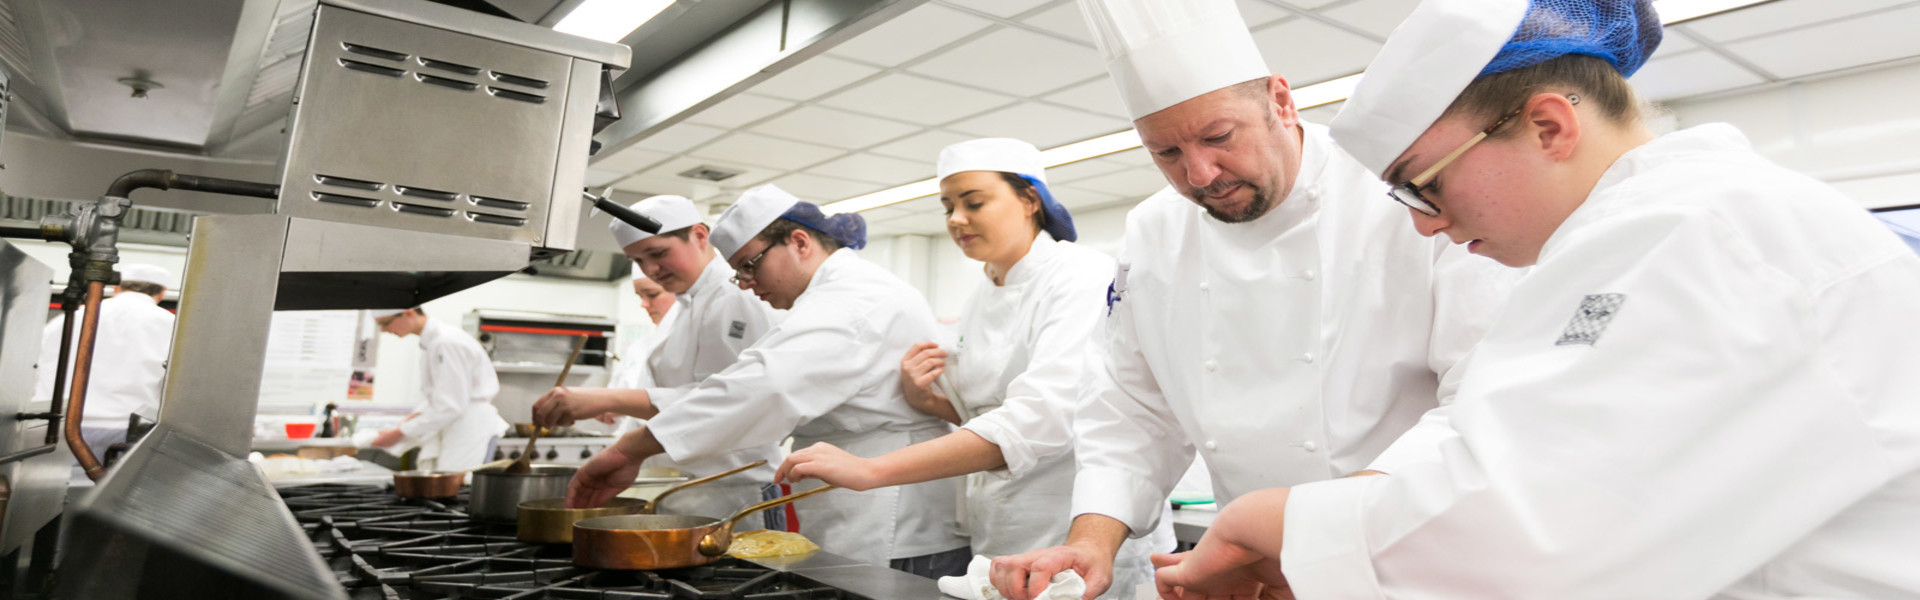 Catering students at South Downs